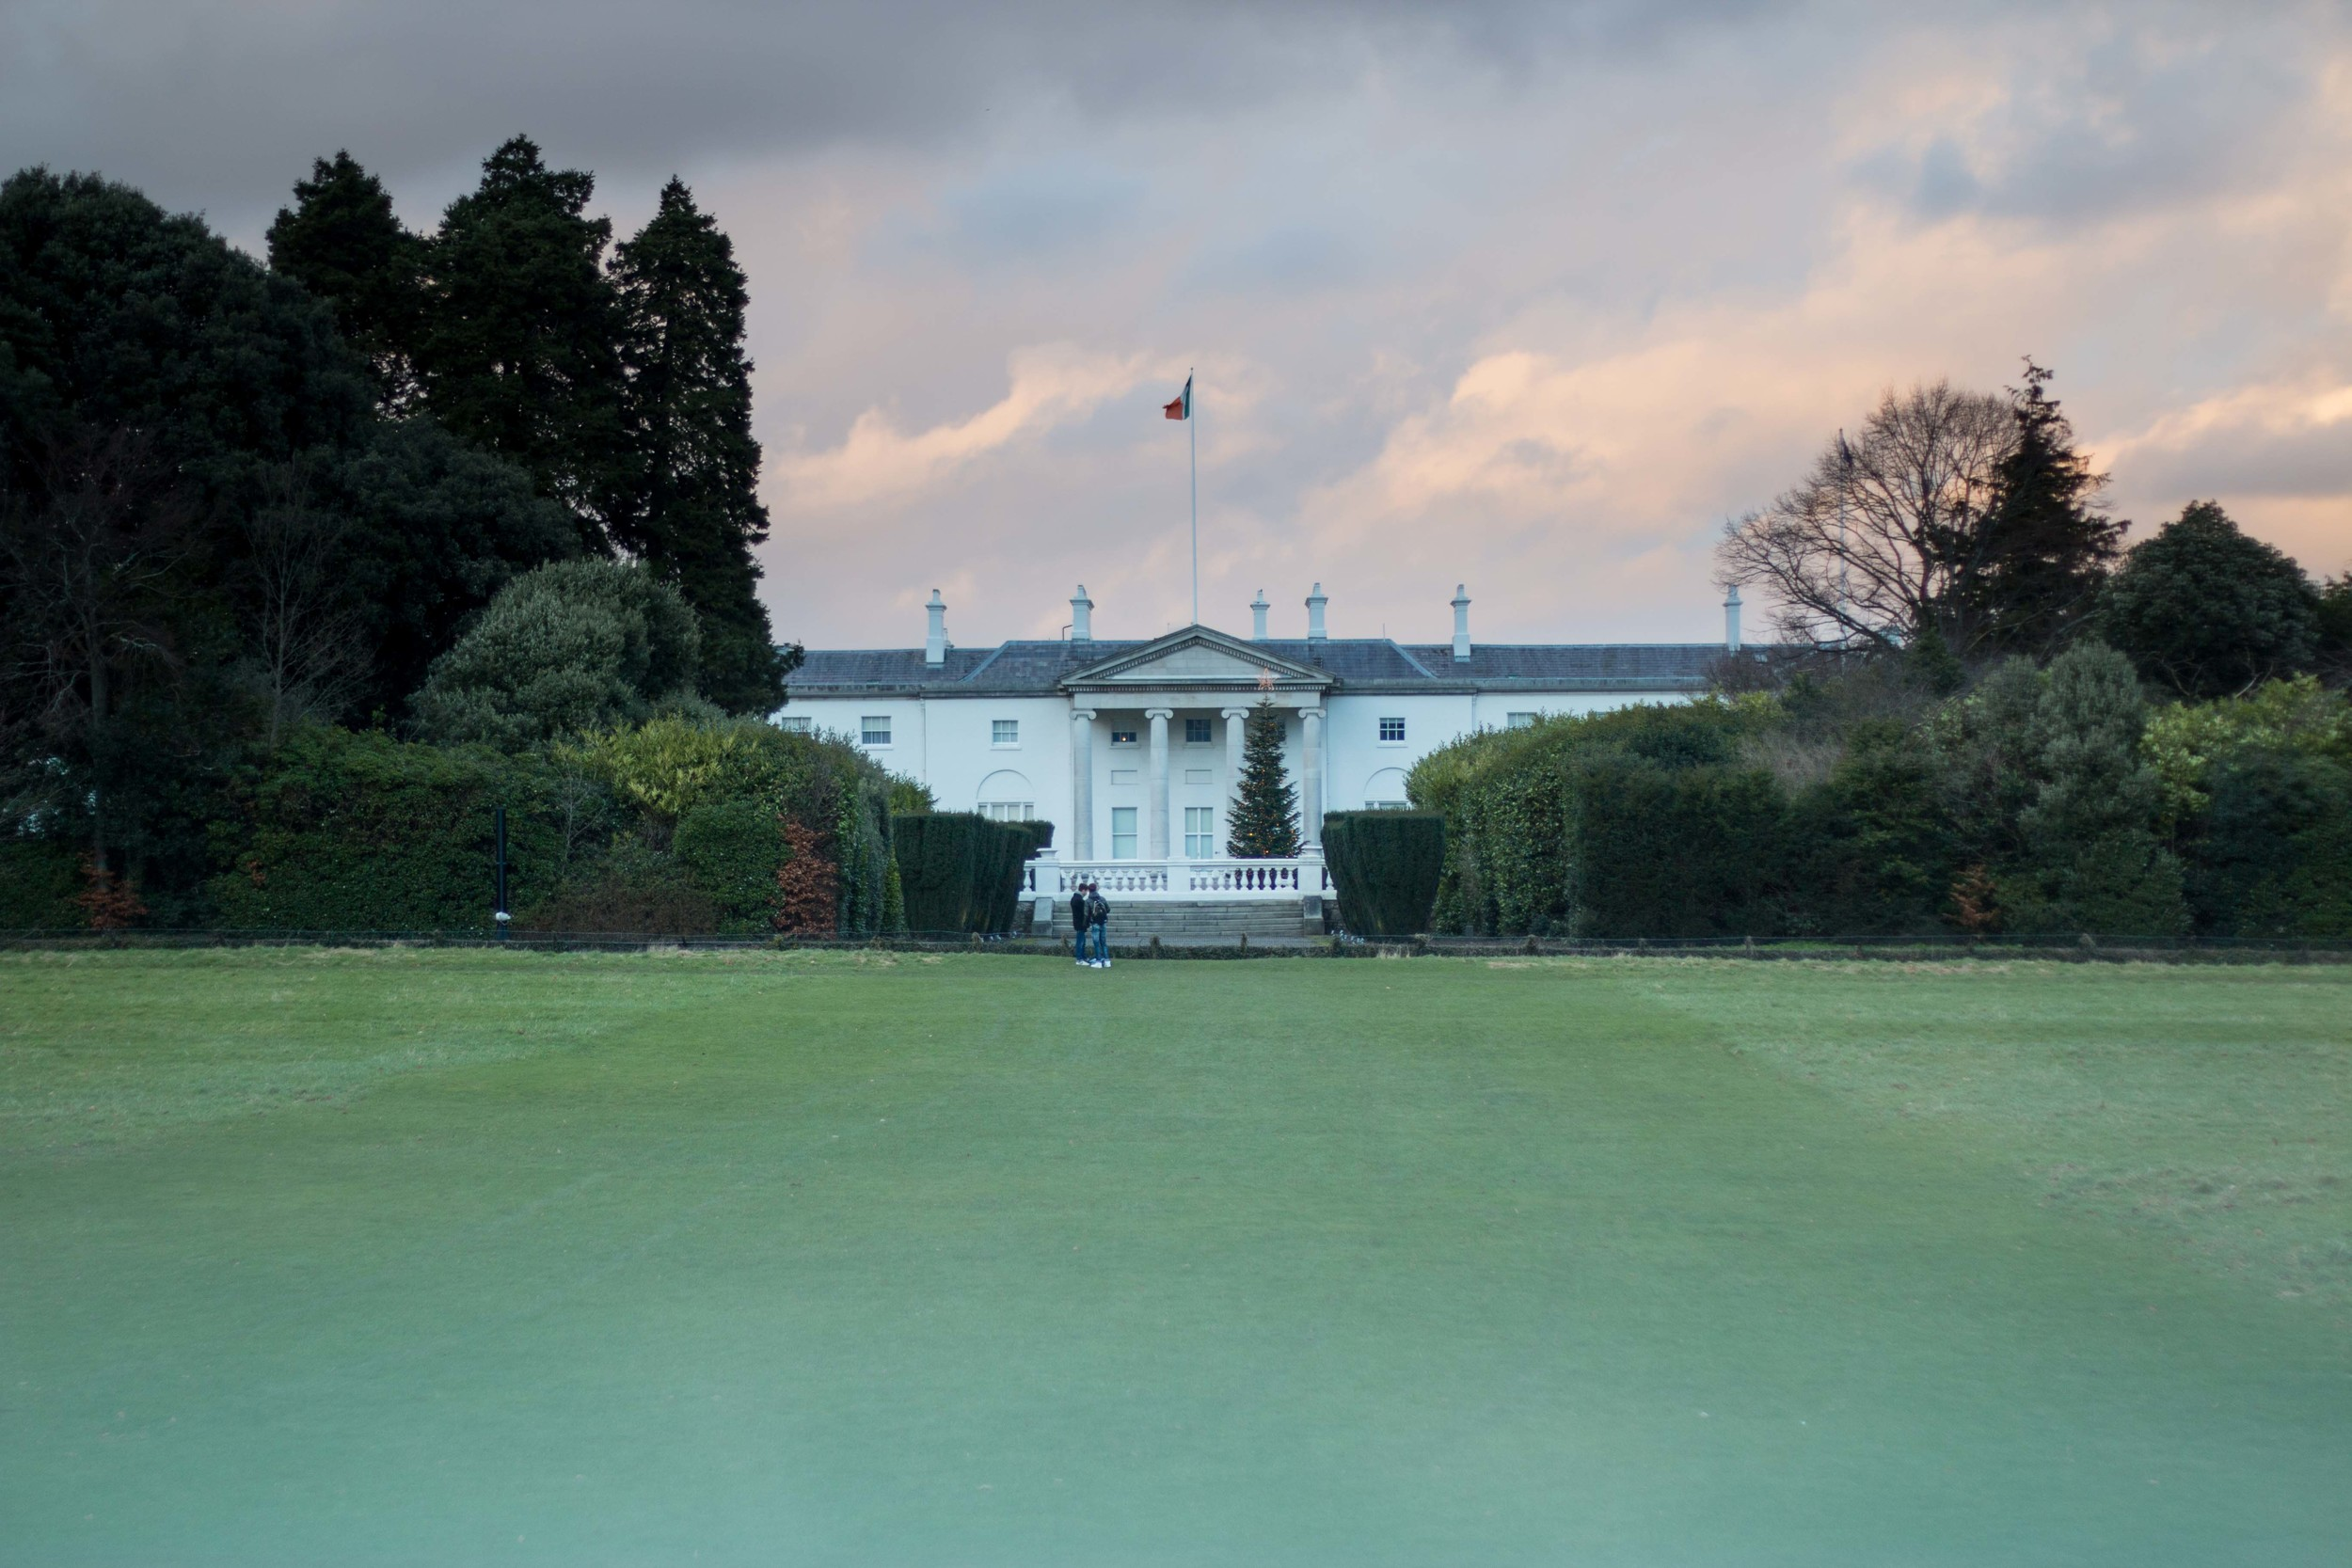 The home of Ireland's president. If you click on the picture, you can see a light in the upper left window. This light was first placed there in 1990 and has been there ever since. It symbolizes all the Irish emigrants and is a beacon to all, beckoning them home.